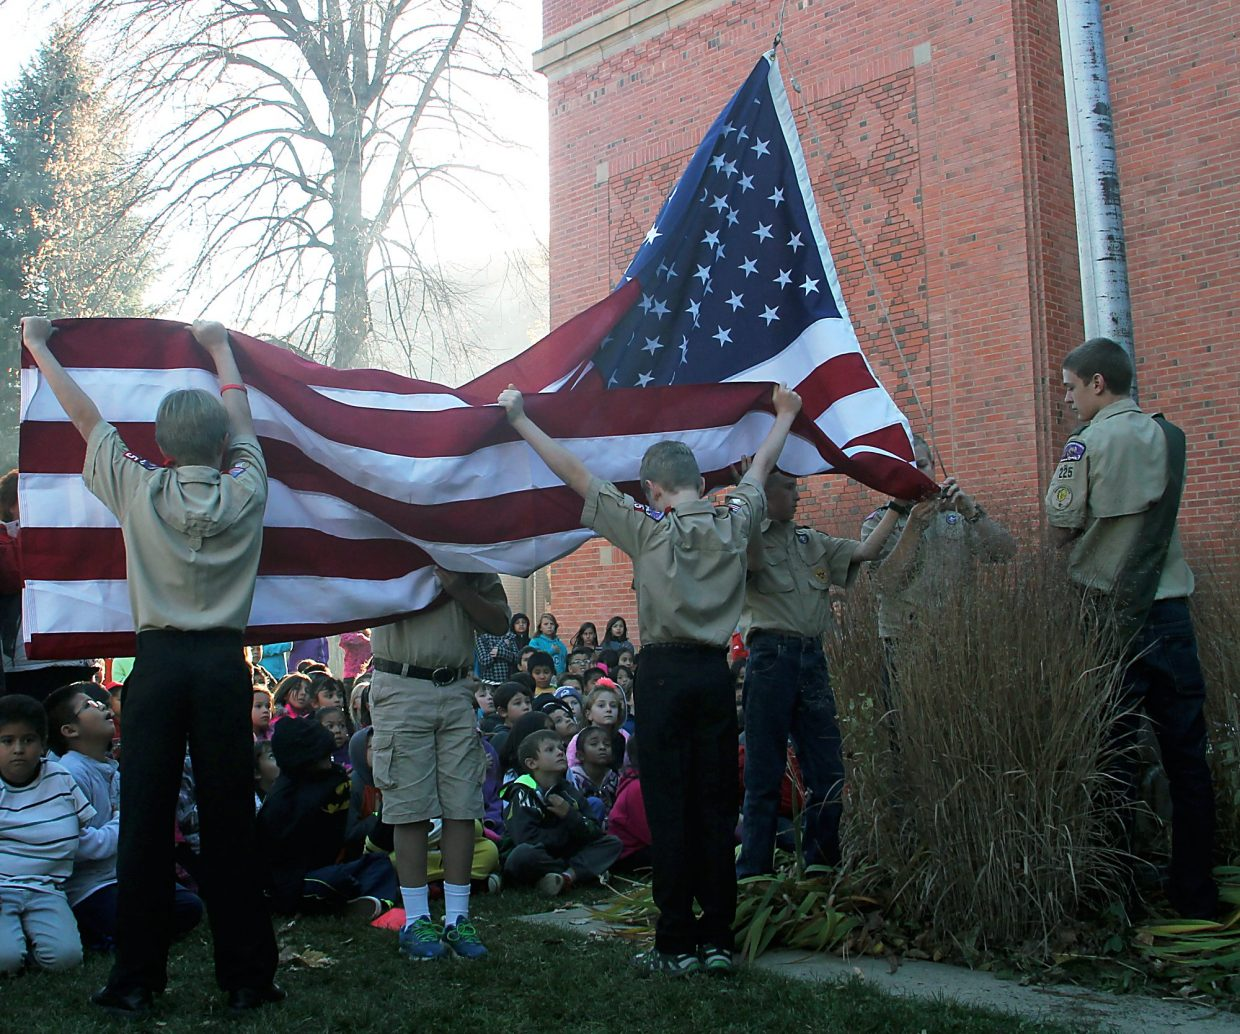 A new flag is raised by Boy Scout Troop 225 at Glenwood Springs Elementary School.